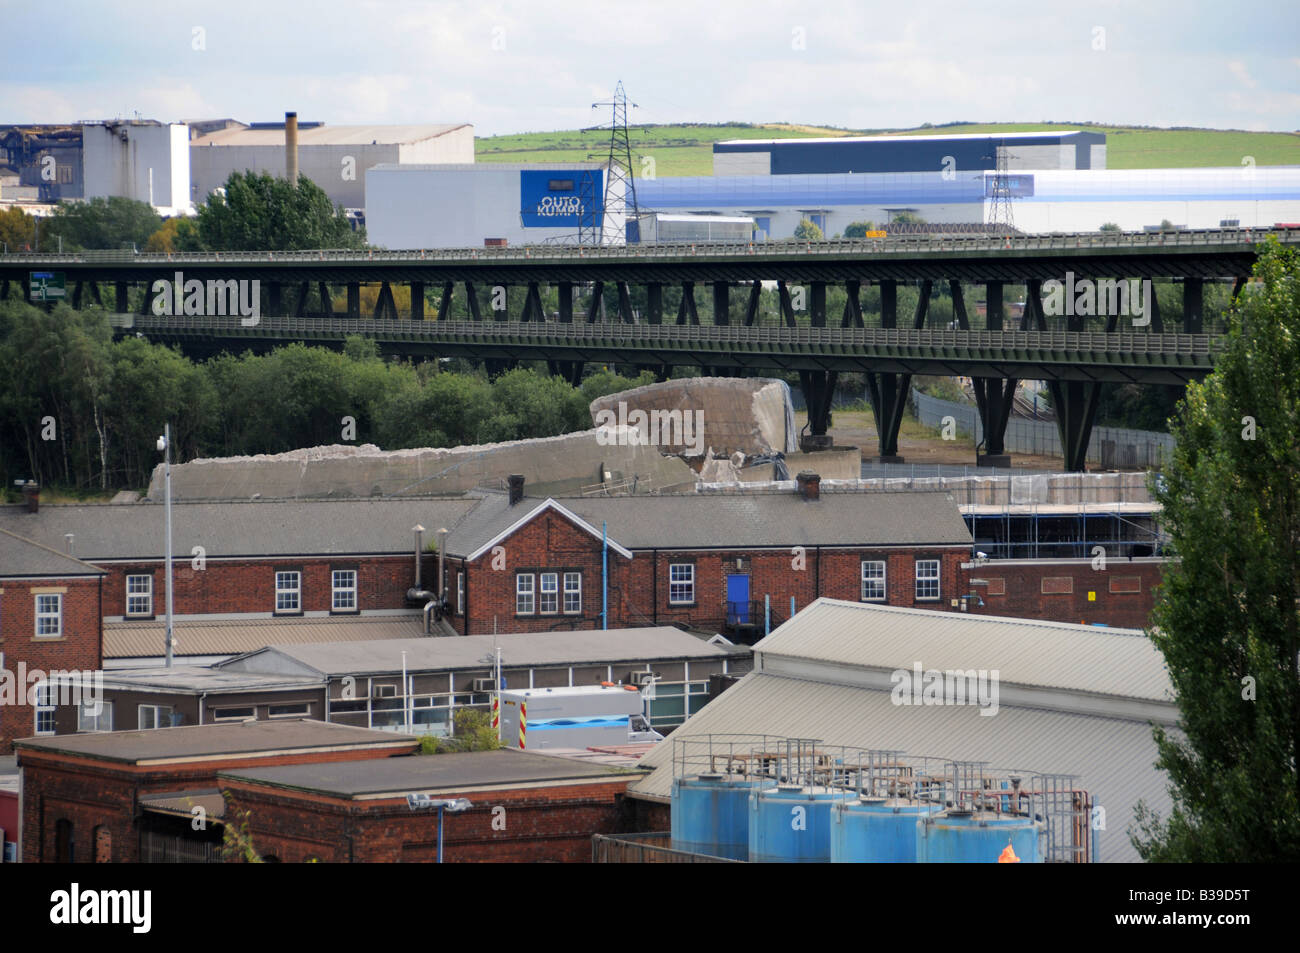 The remains of the Tinsley Cooling Towers 12 hours after the Towers were demolished 24 August 2008, Sheffield, England, - Stock Image